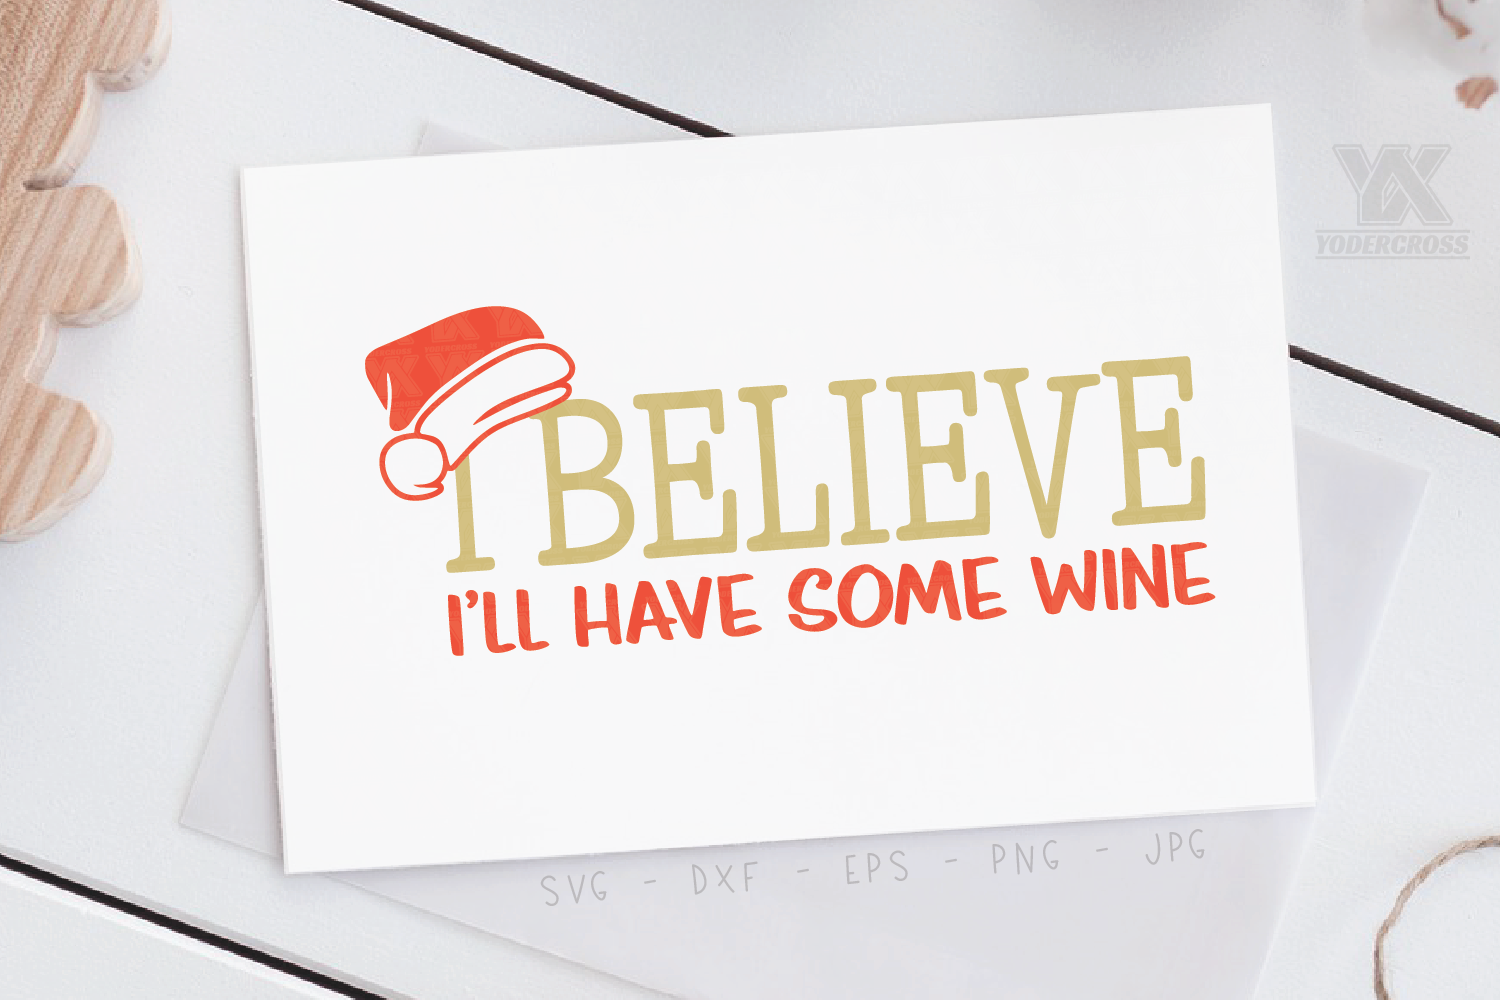 I Believe I'll Have Some Wine SVG example image 2